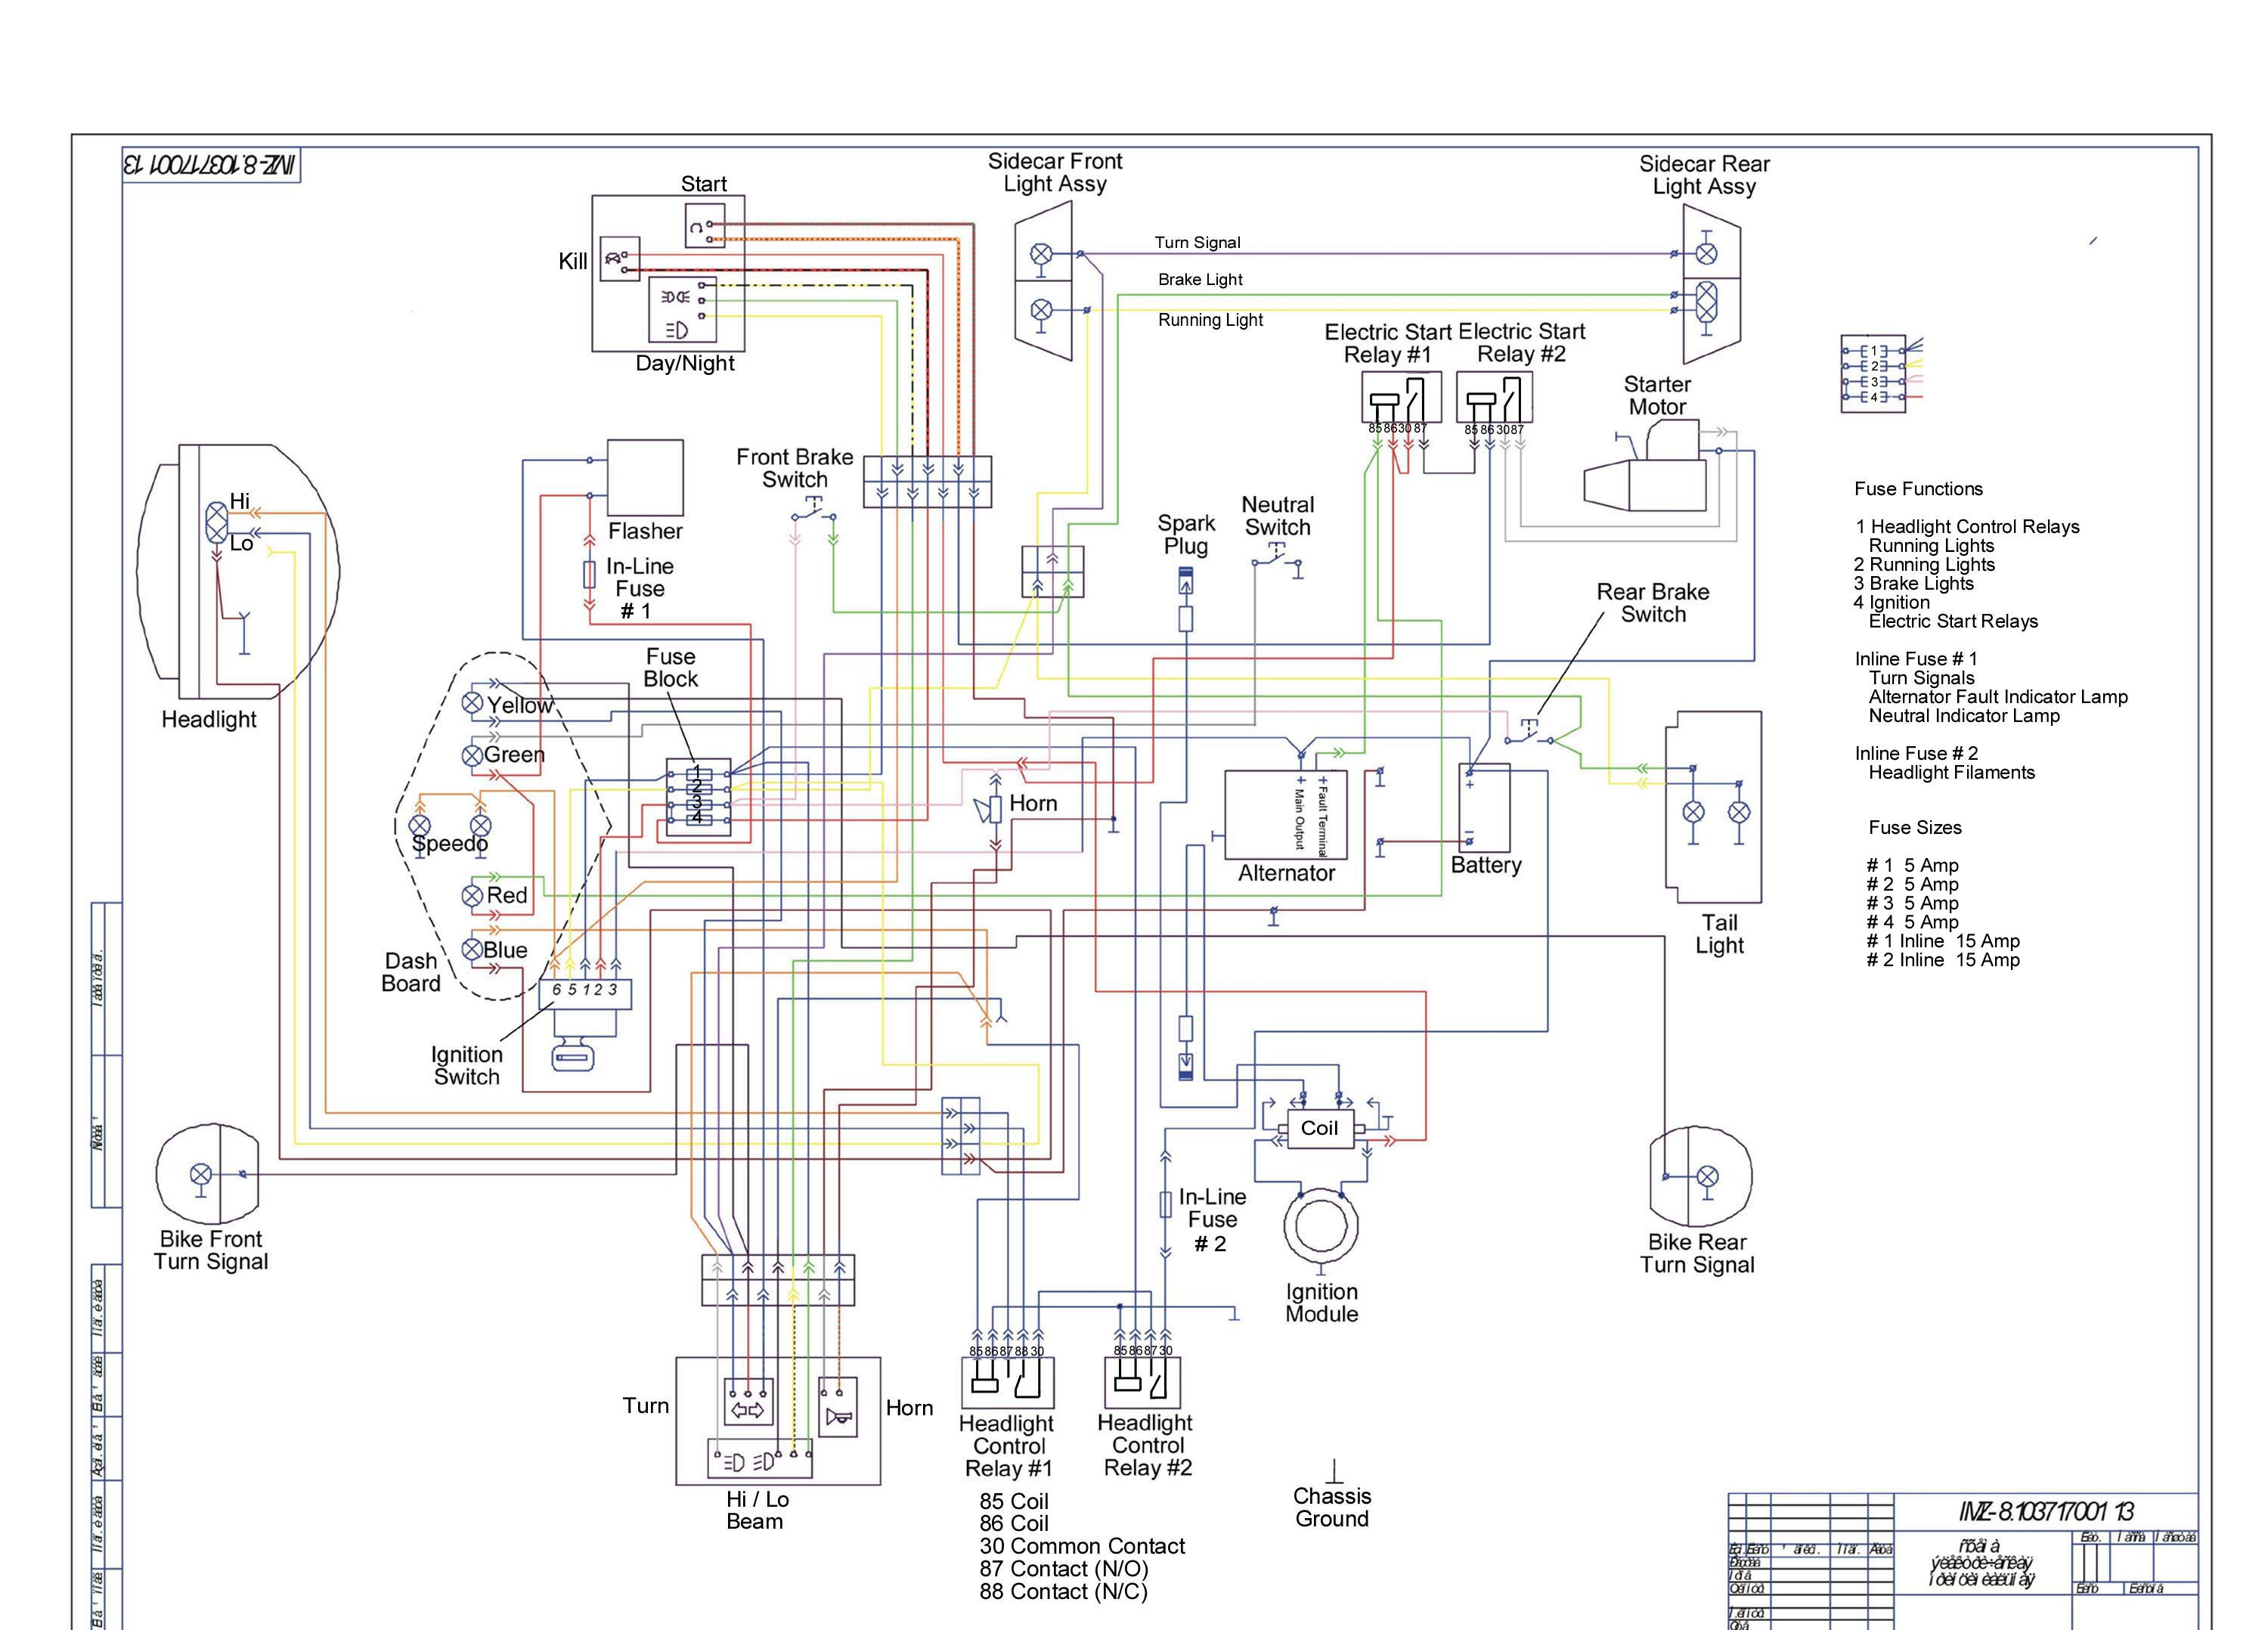 750 Wiring Schematic 2002 750cc wiring schematic ural wiring diagram at mifinder.co